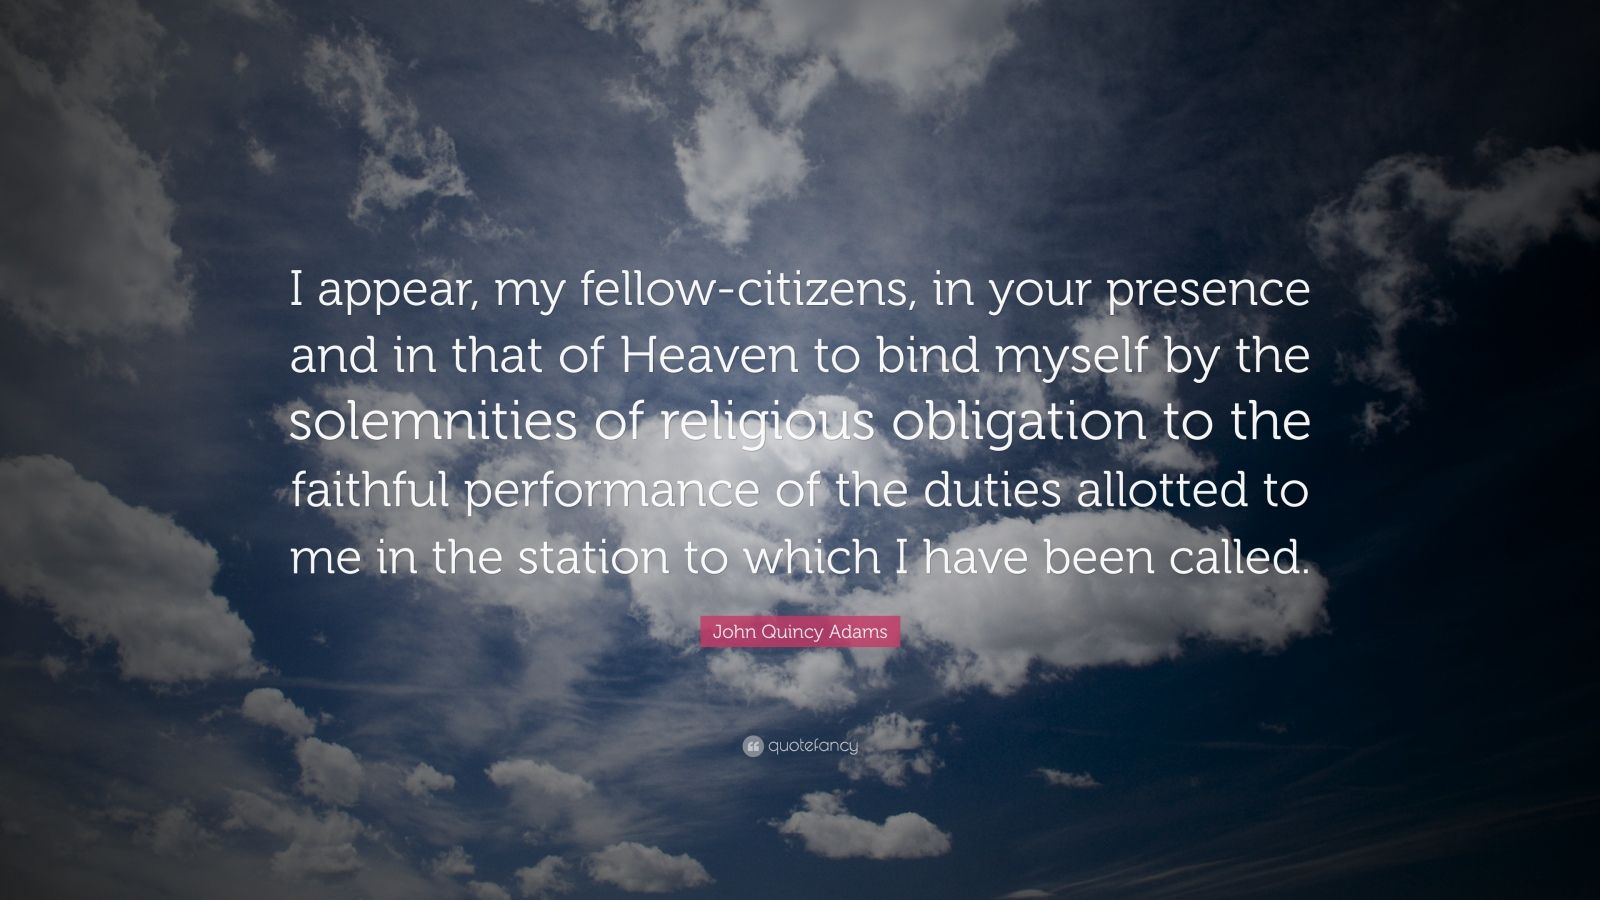 """John Quincy Adams Quote: """"I appear, my fellow-citizens, in your presence and in that of Heaven to bind myself by the solemnities of religious obligation to the faithful performance of the duties allotted to me in the station to which I have been called."""""""